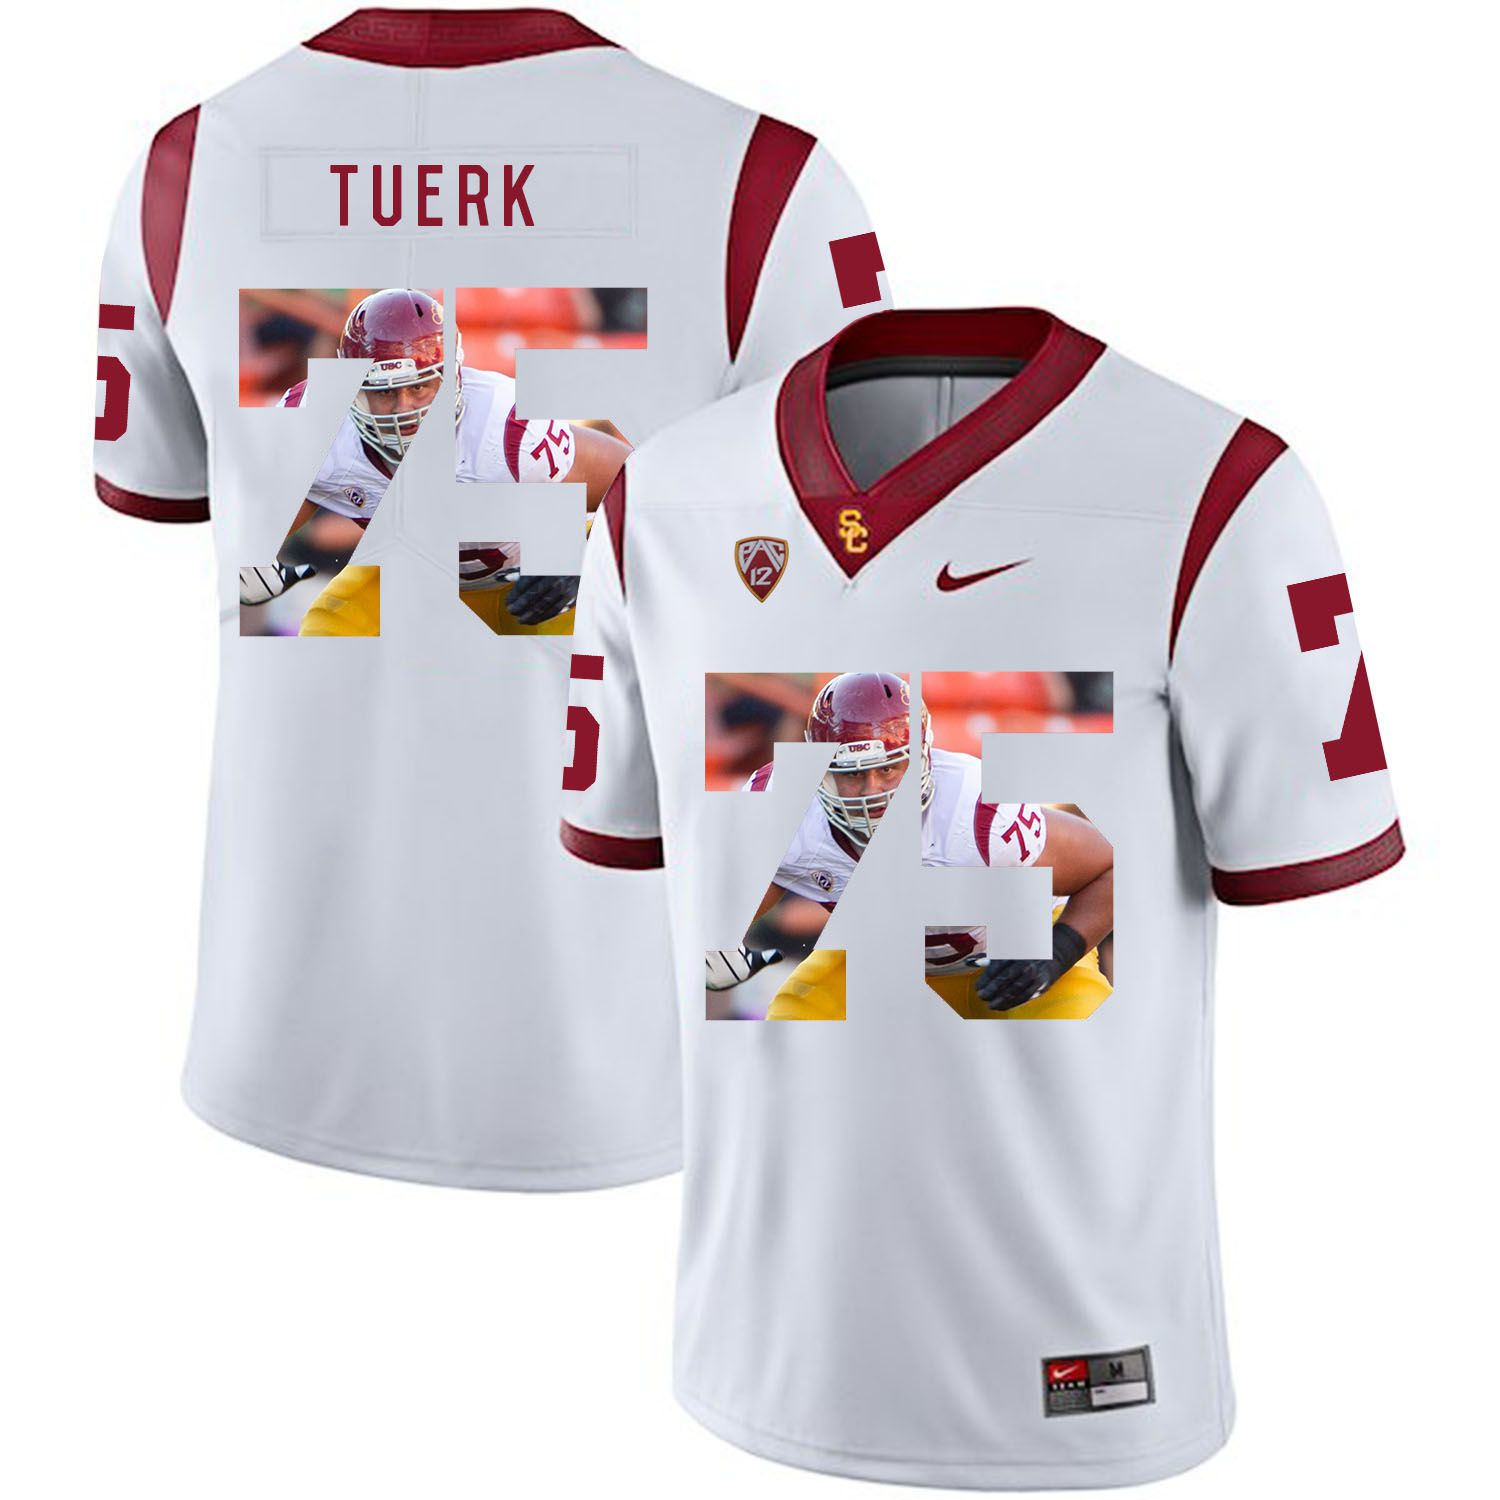 Men USC Trojans 75 Tuerk White Fashion Edition Customized NCAA Jerseys